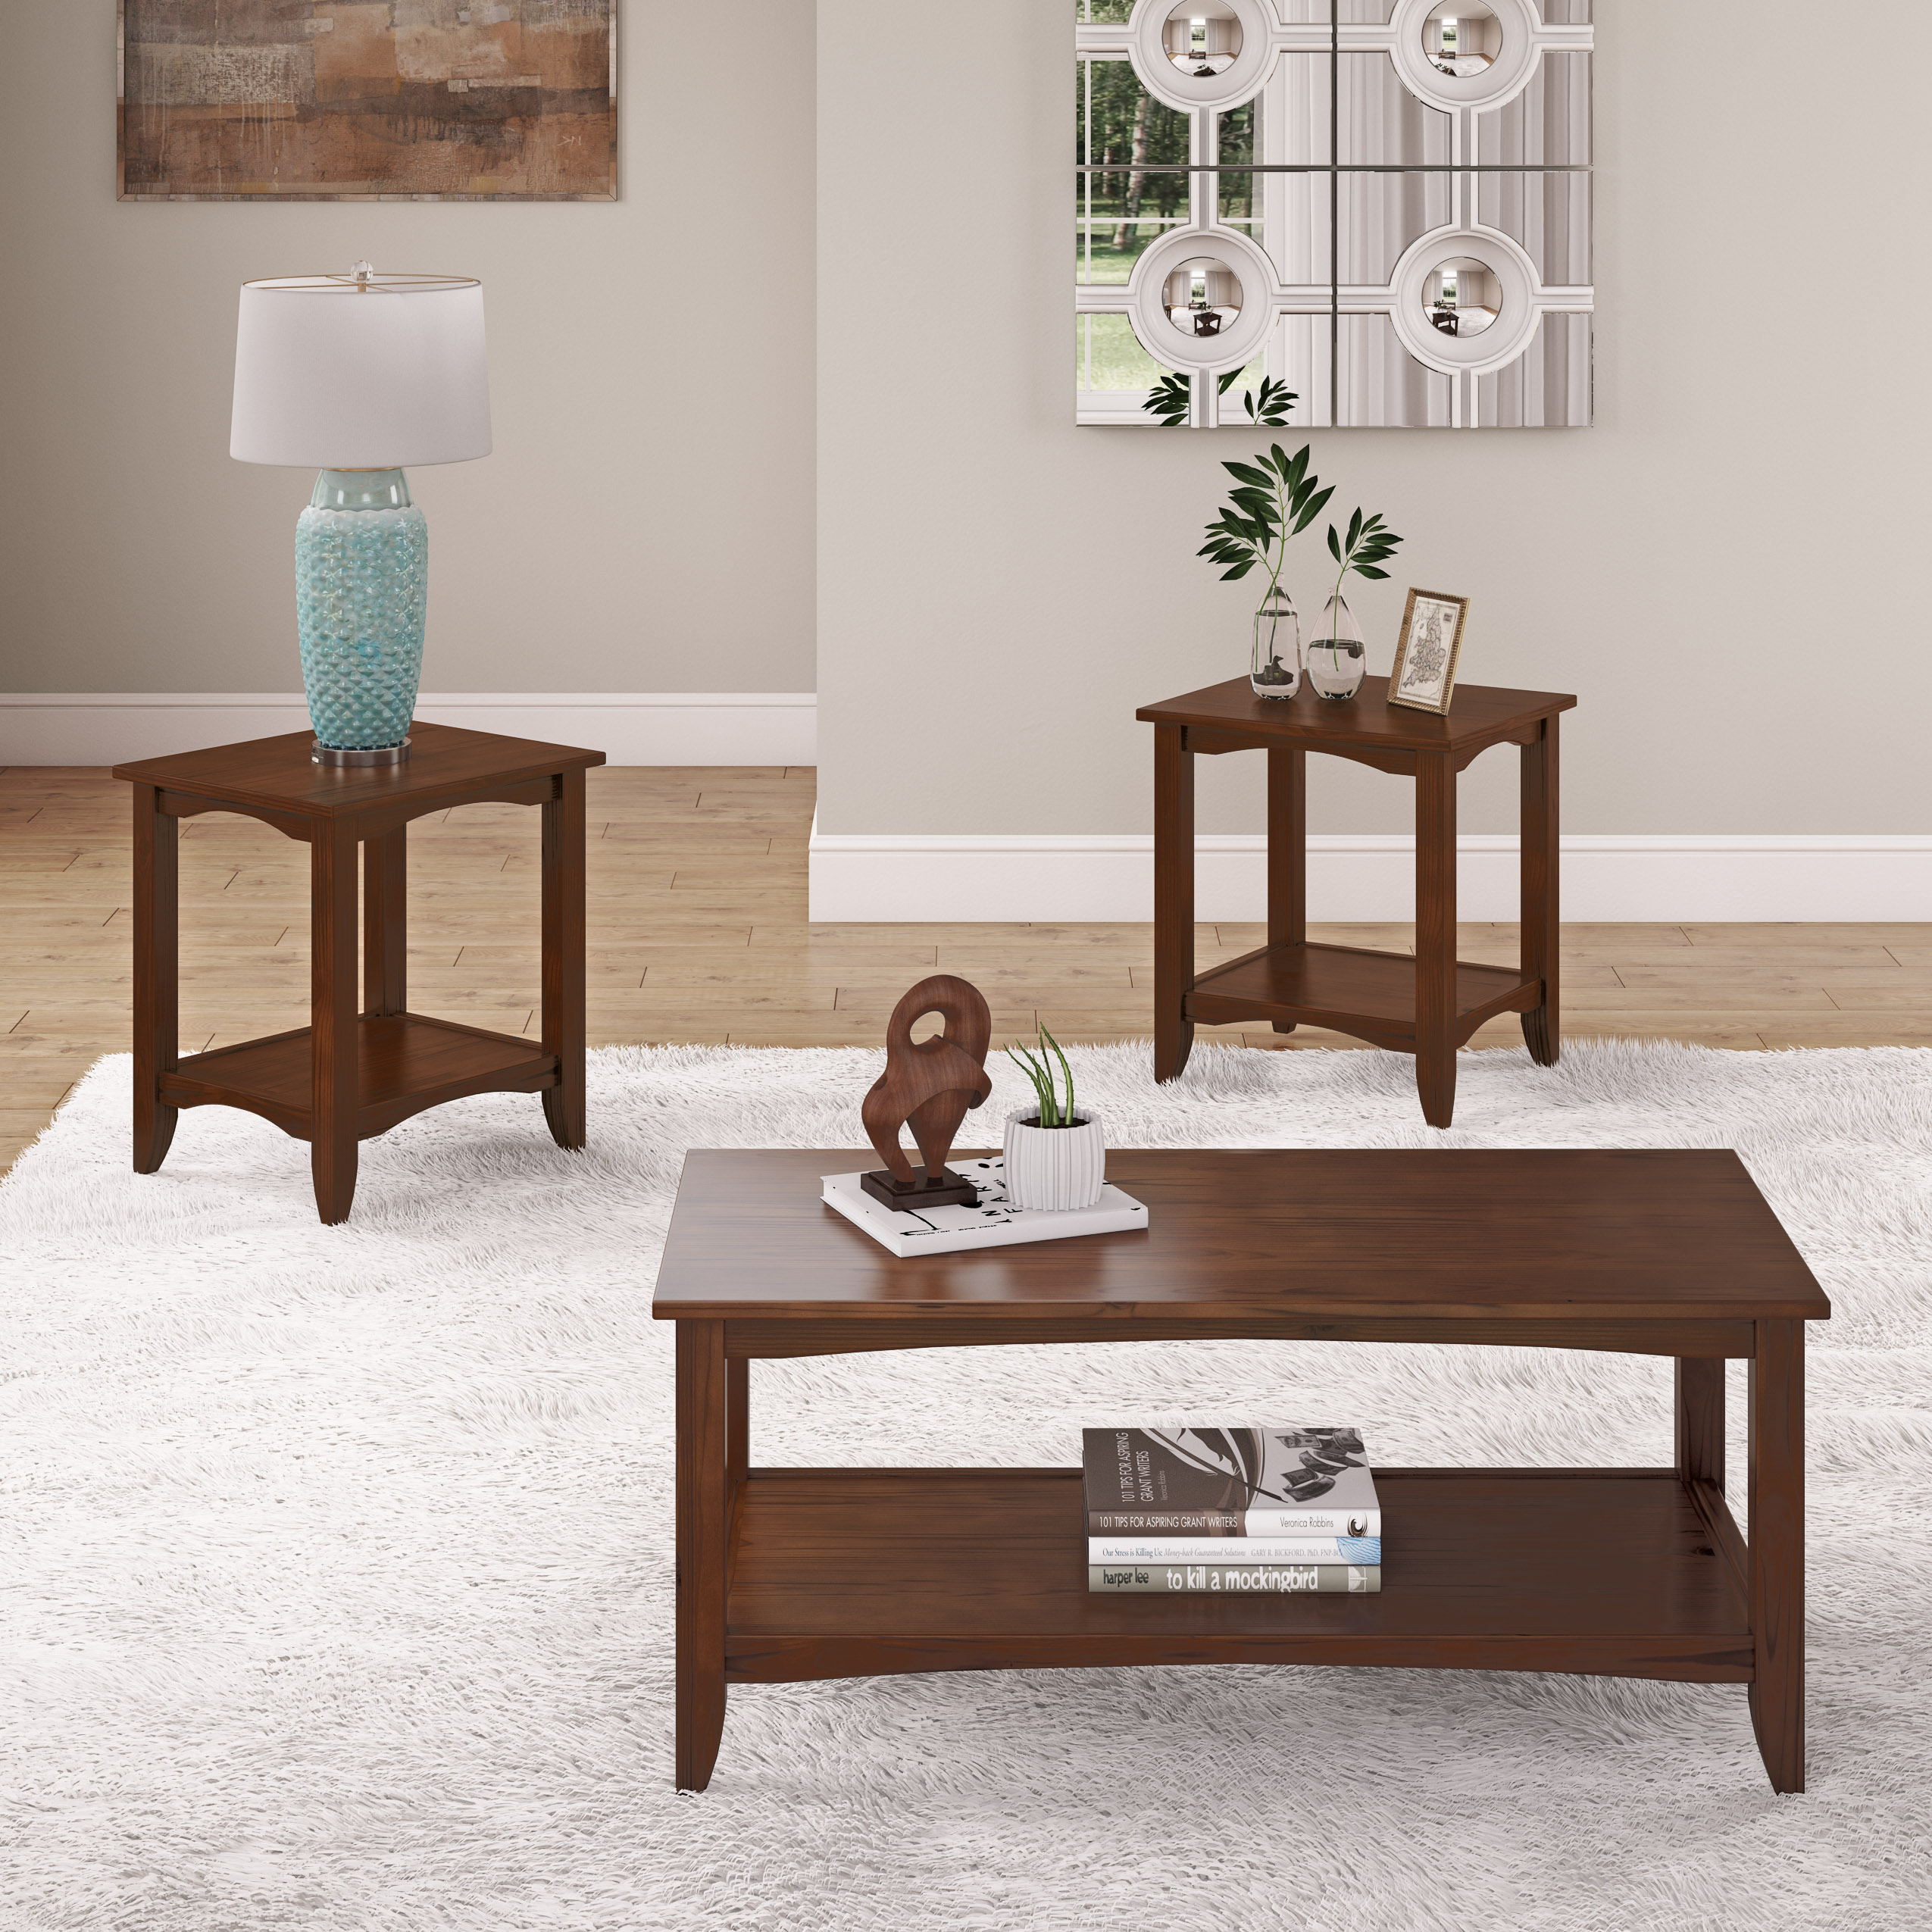 CorLiving Cambridge 3pc Solid Wood Two-Tiered Coffee Table and End Tables Set